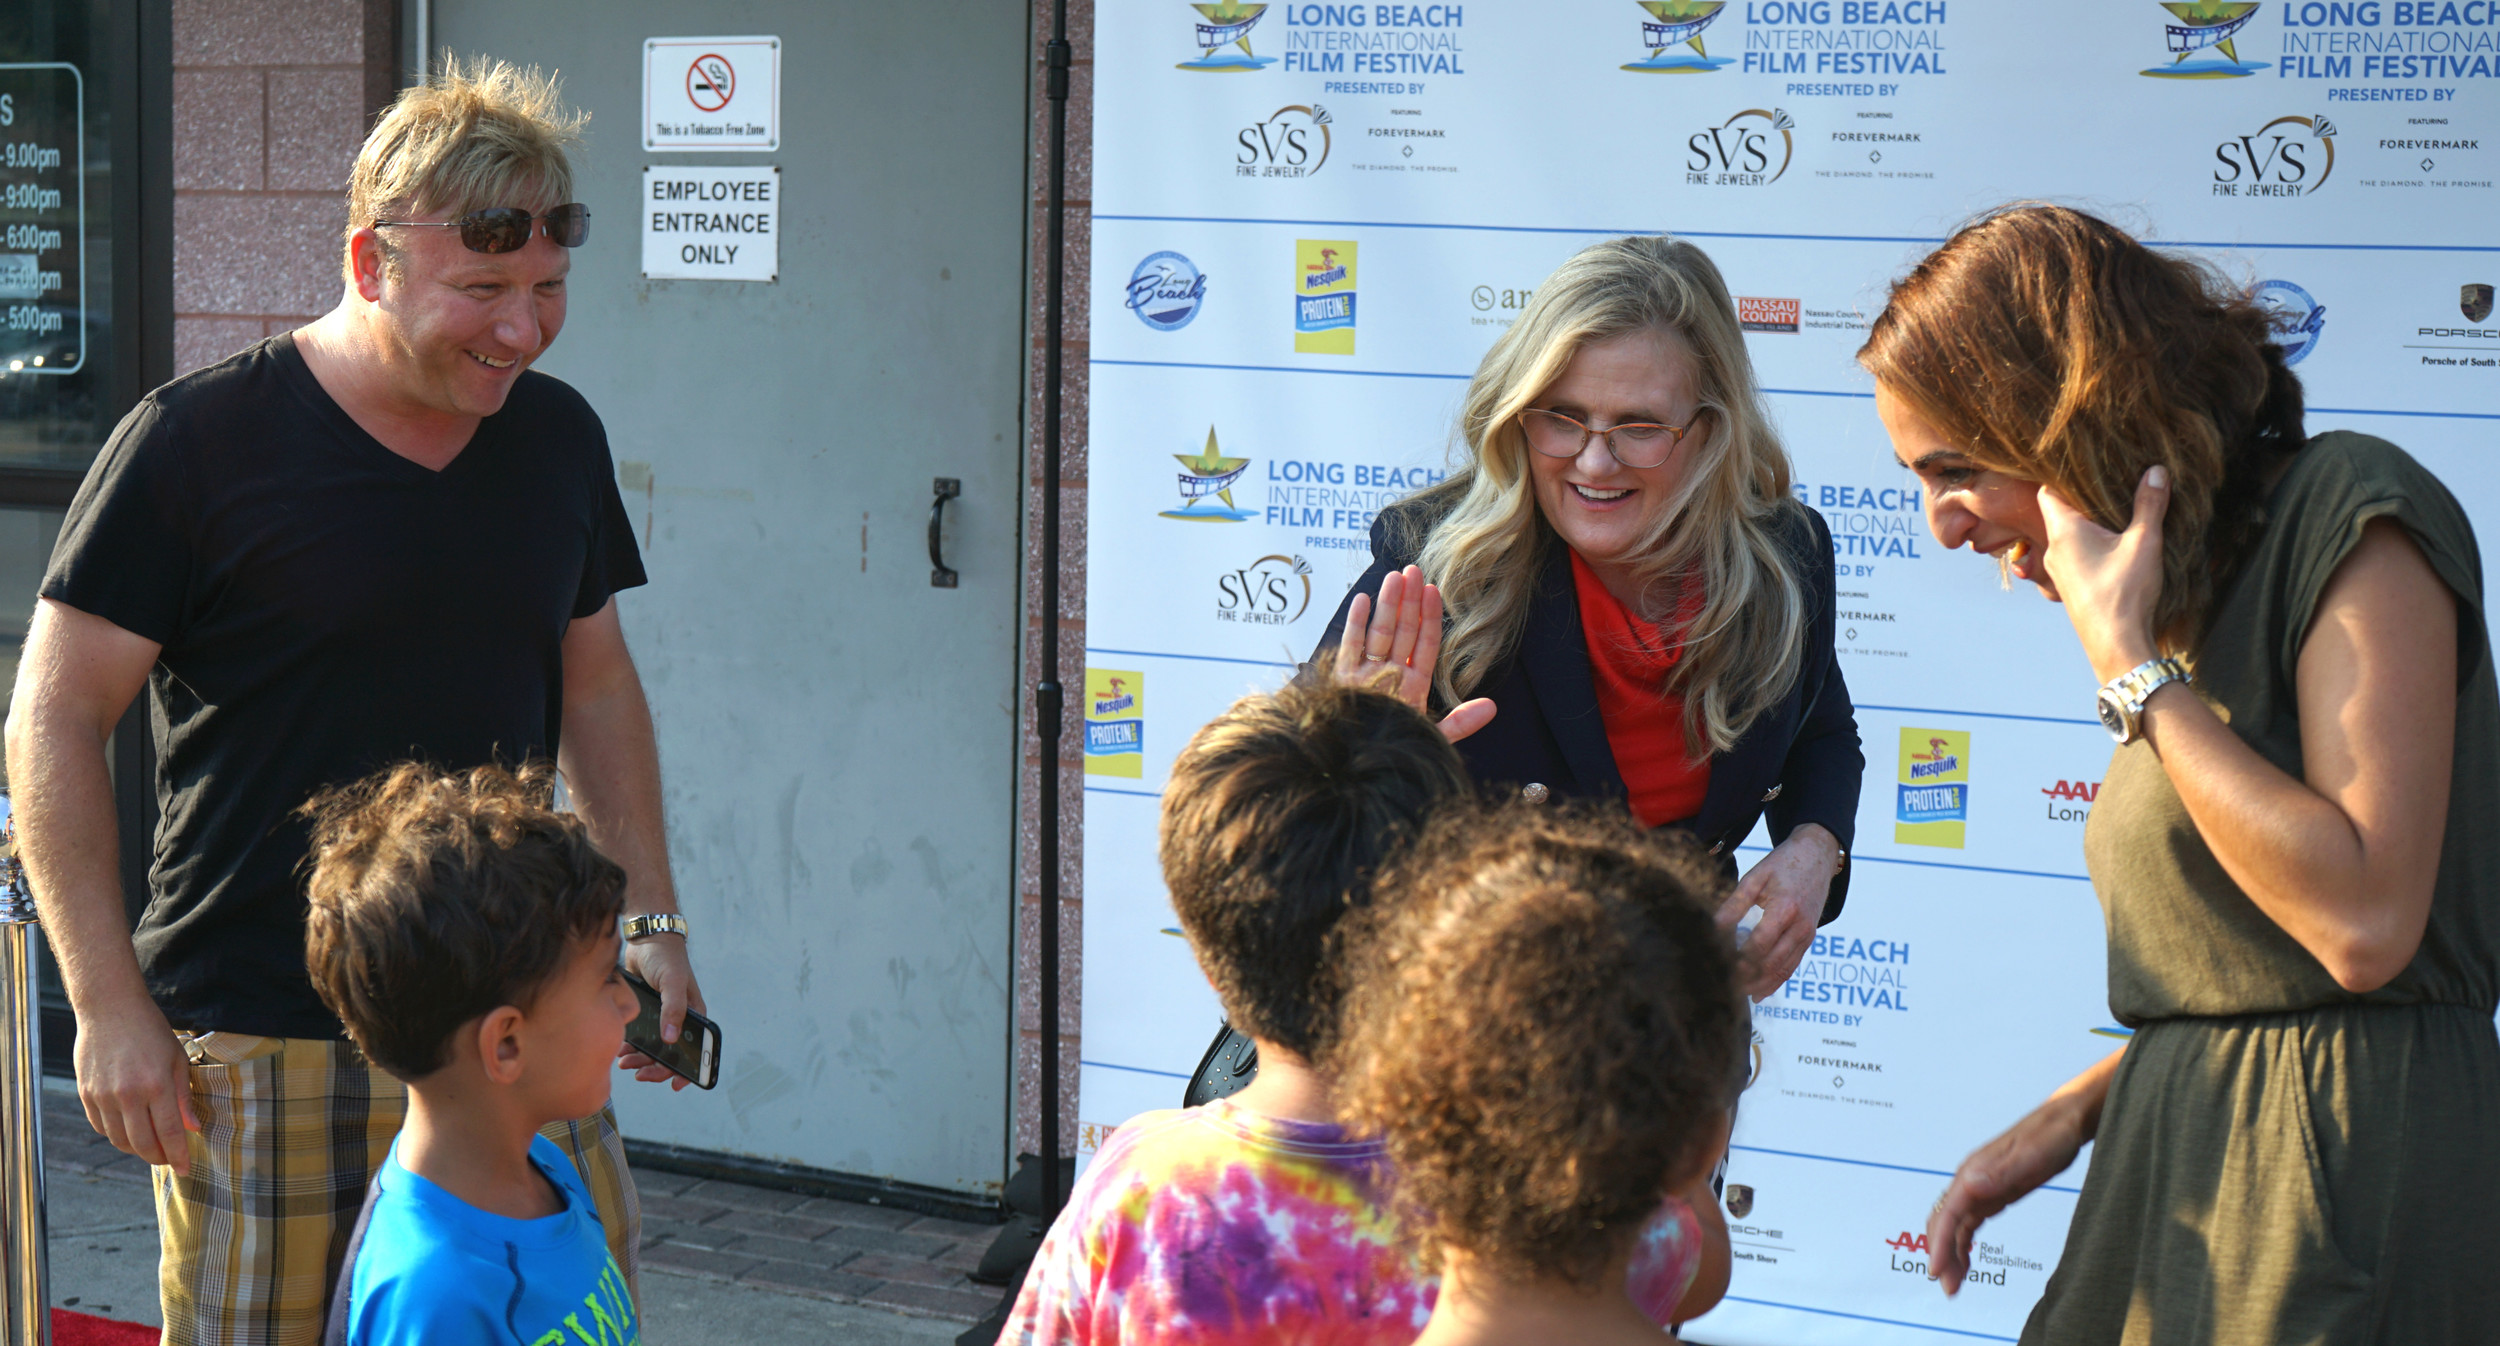 "Actor Nancy Cartwright, center, the voice of Bart Simpson in the animated television series ""The Simpsons,"" greeted fans on Aug. 1, the opening night of the sixth annual Long Beach International Film Festival, at the premiere of a film she produced, ""In Search of Fellini."" Story, more photos, Page 9."